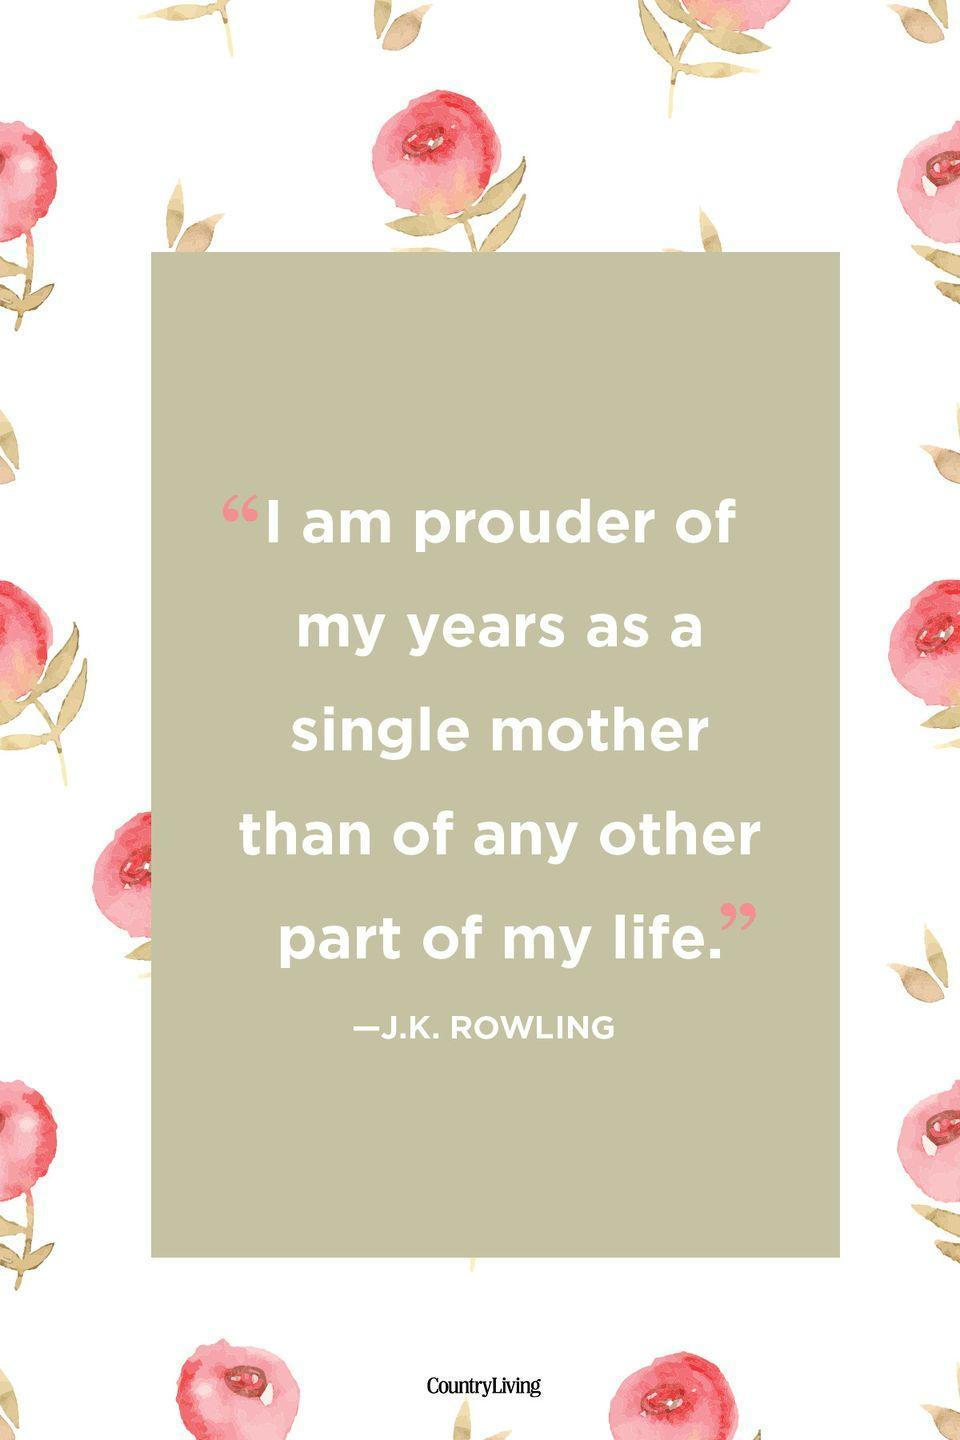 "<p>""I am prouder of my years as a single mother than of any other part of my life.""</p>"